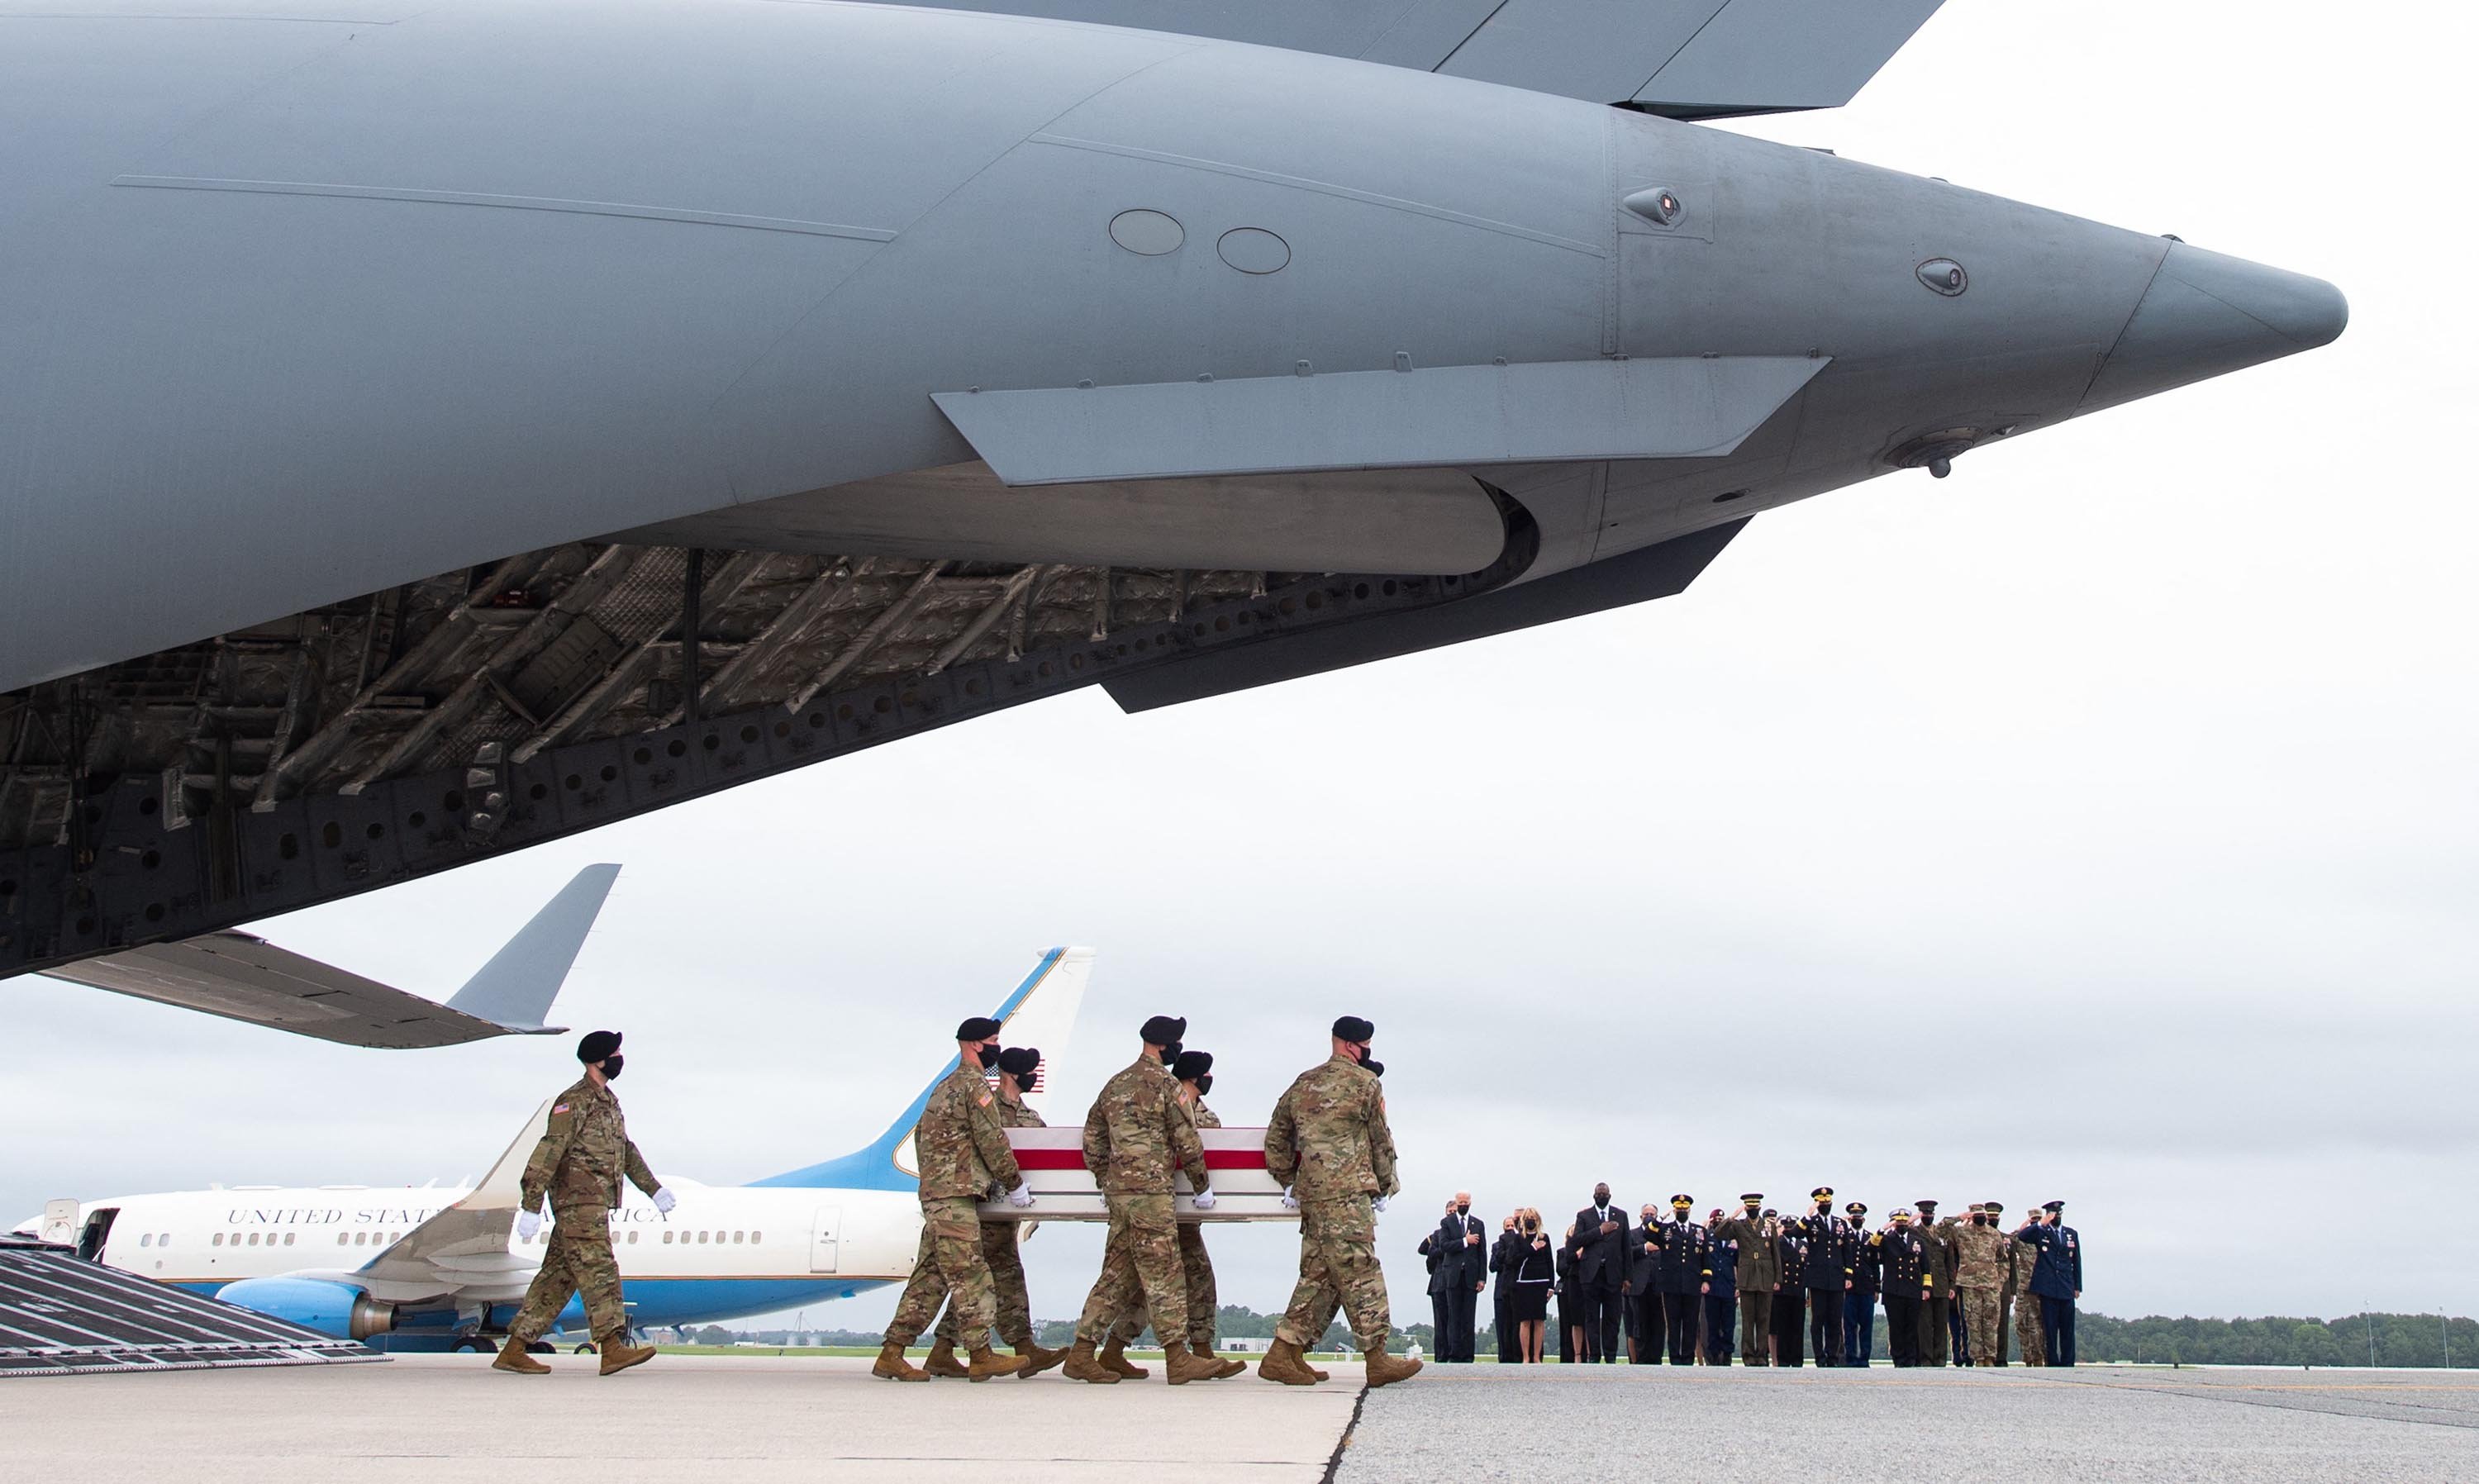 US President Joe Biden and other officials attend the dignified transfer of the remains offallen service members at Dover Air Force Base in Dover, Delaware, August, 29, after 13 members of the US military were killed in Afghanistan last week.